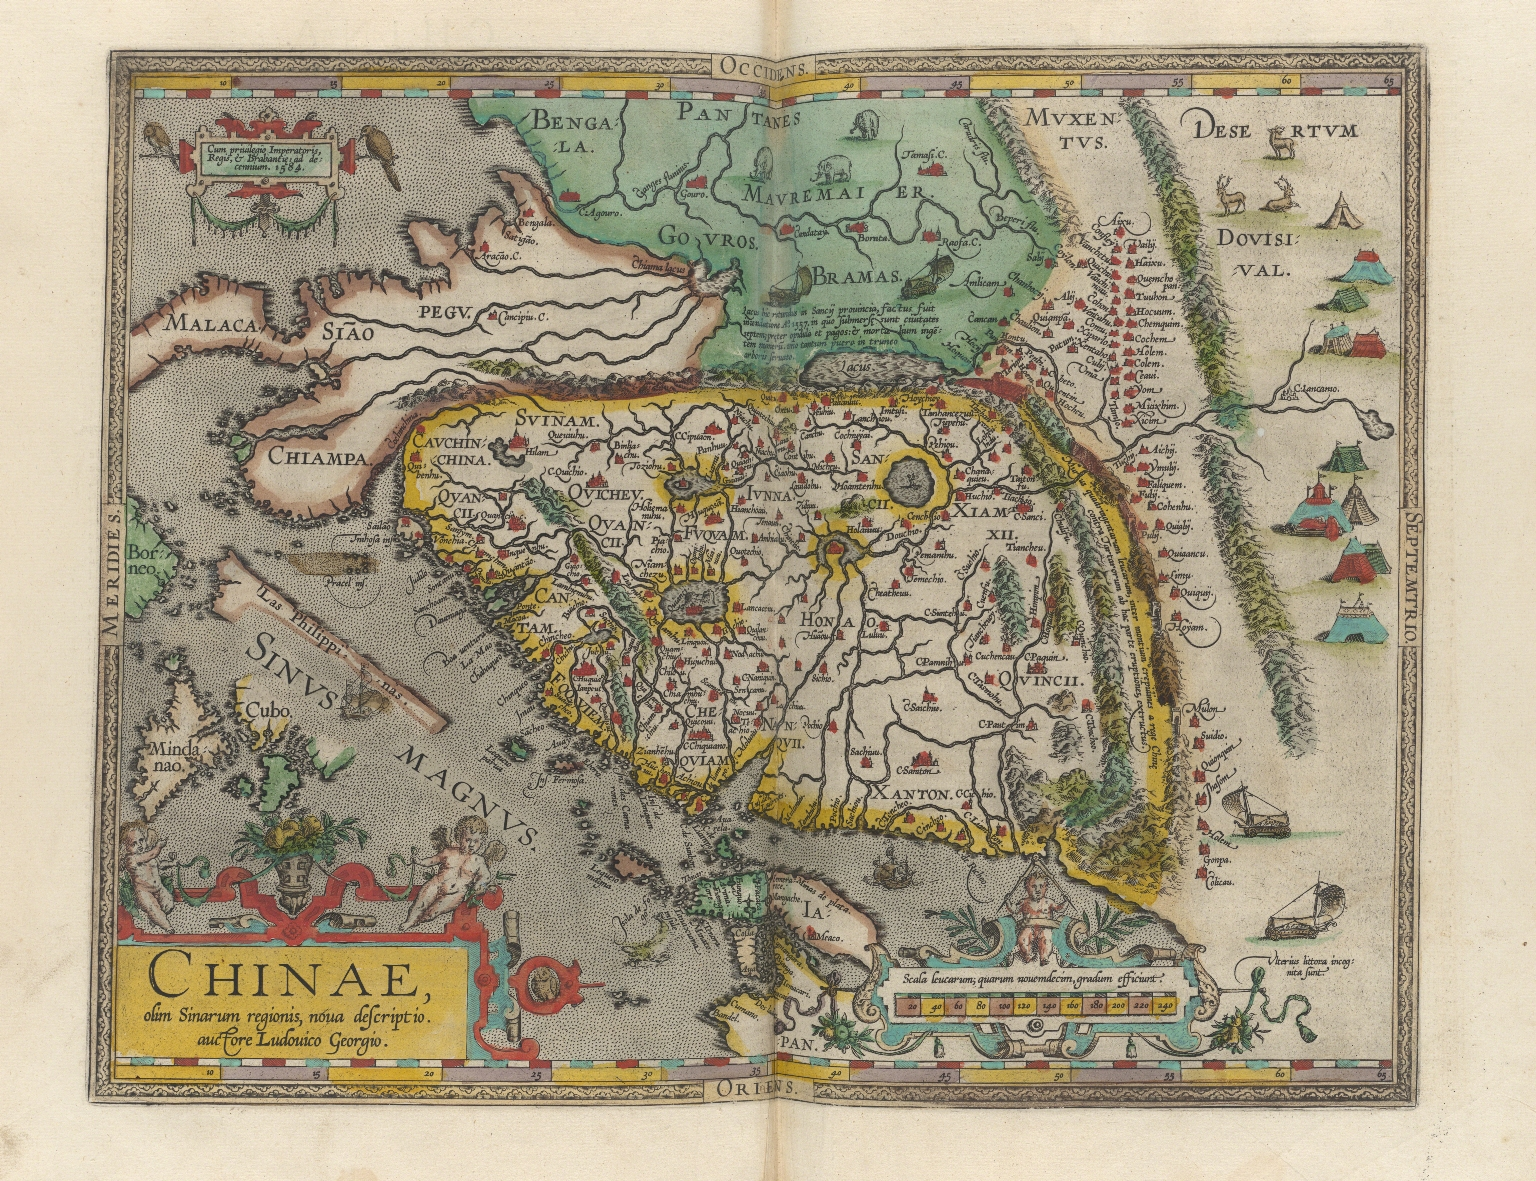 A new representation of China, once called the region of the Chinese, by Ludovicus Georgius